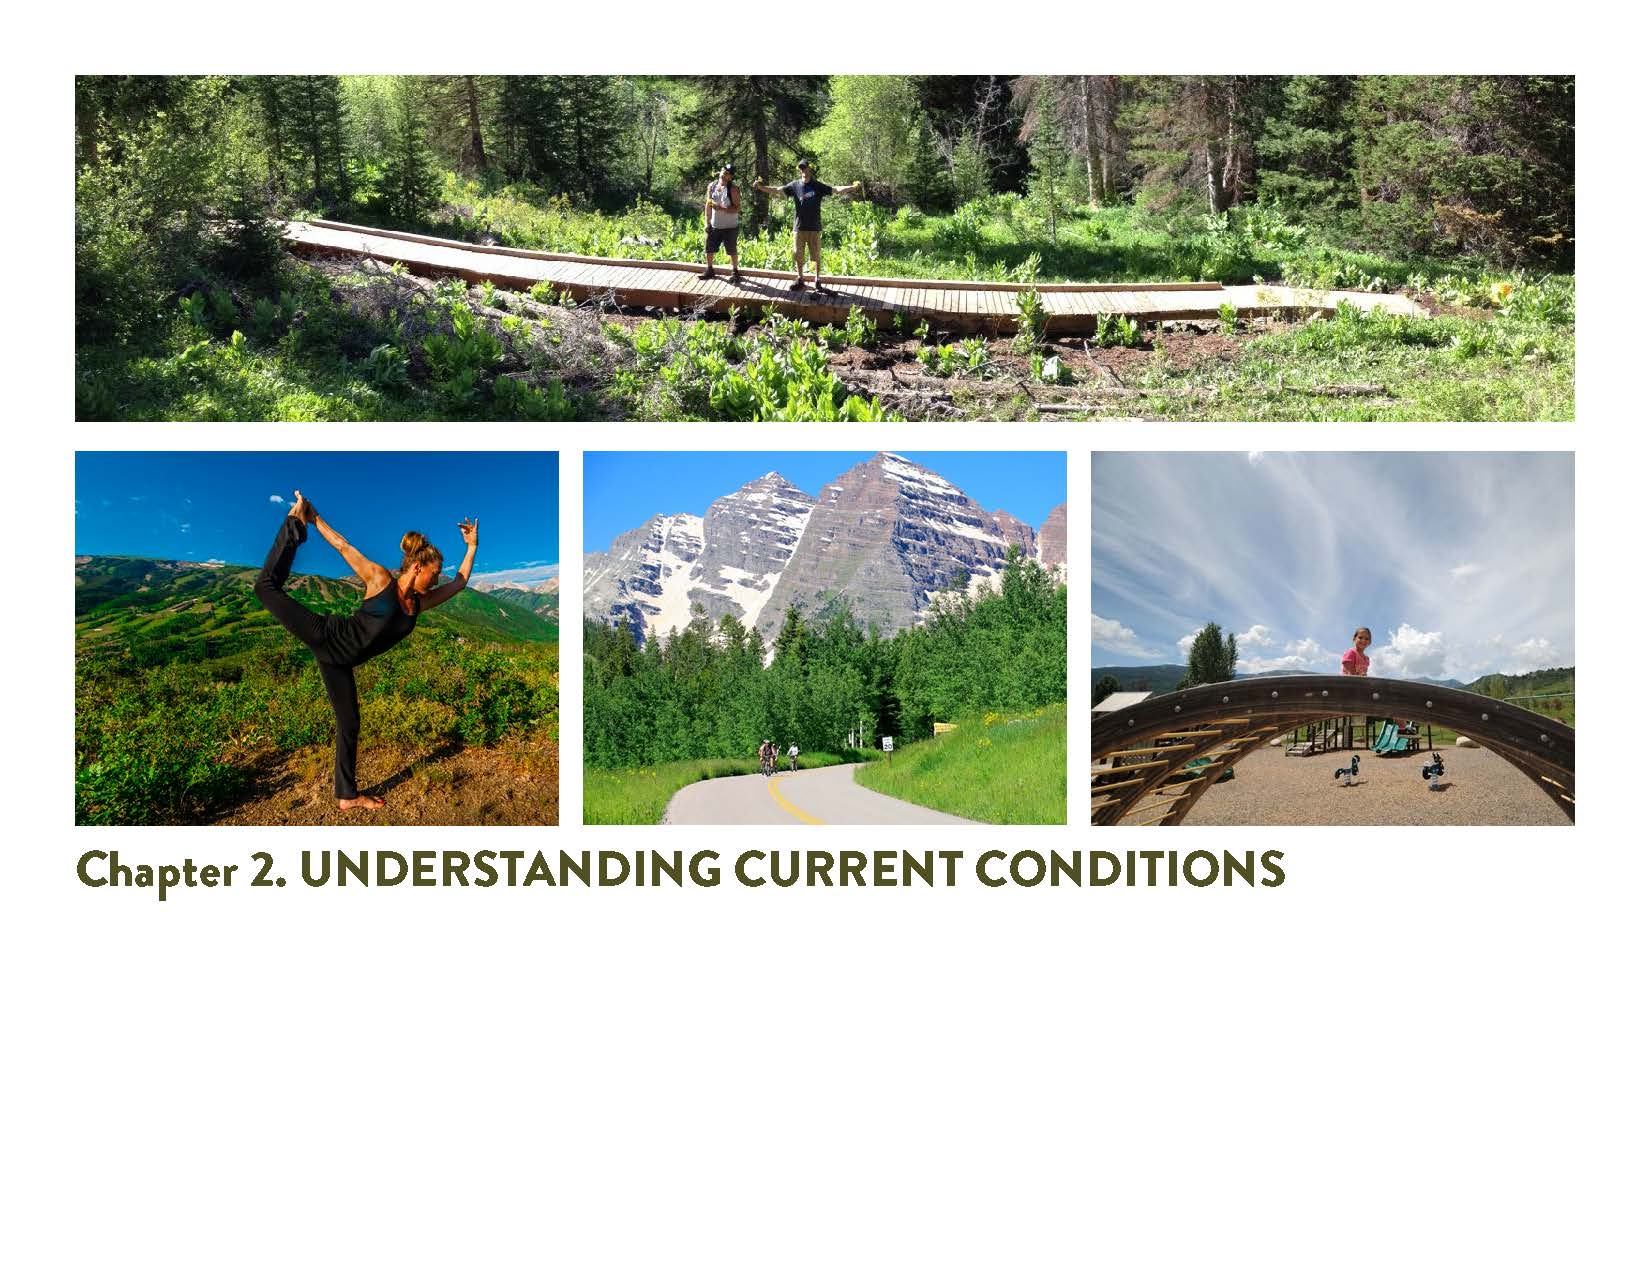 Chapter 2: Understanding Current Conditions